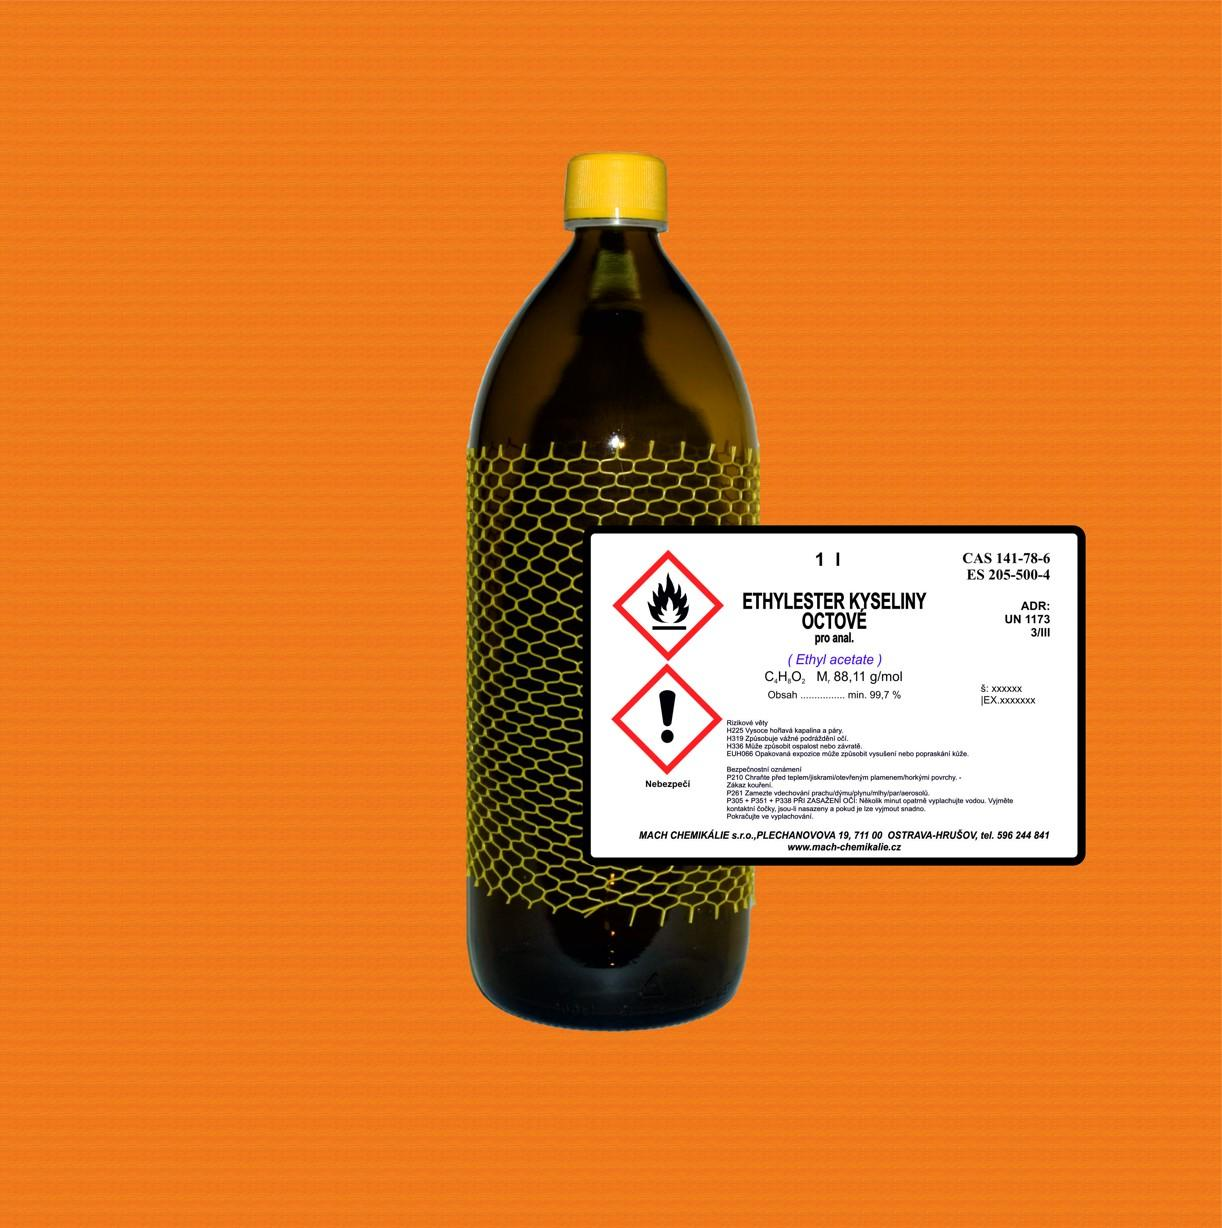 ethylace E-shop: Ethylester kyseliny octové (Ethyl acetate) p.a., 1000 ml